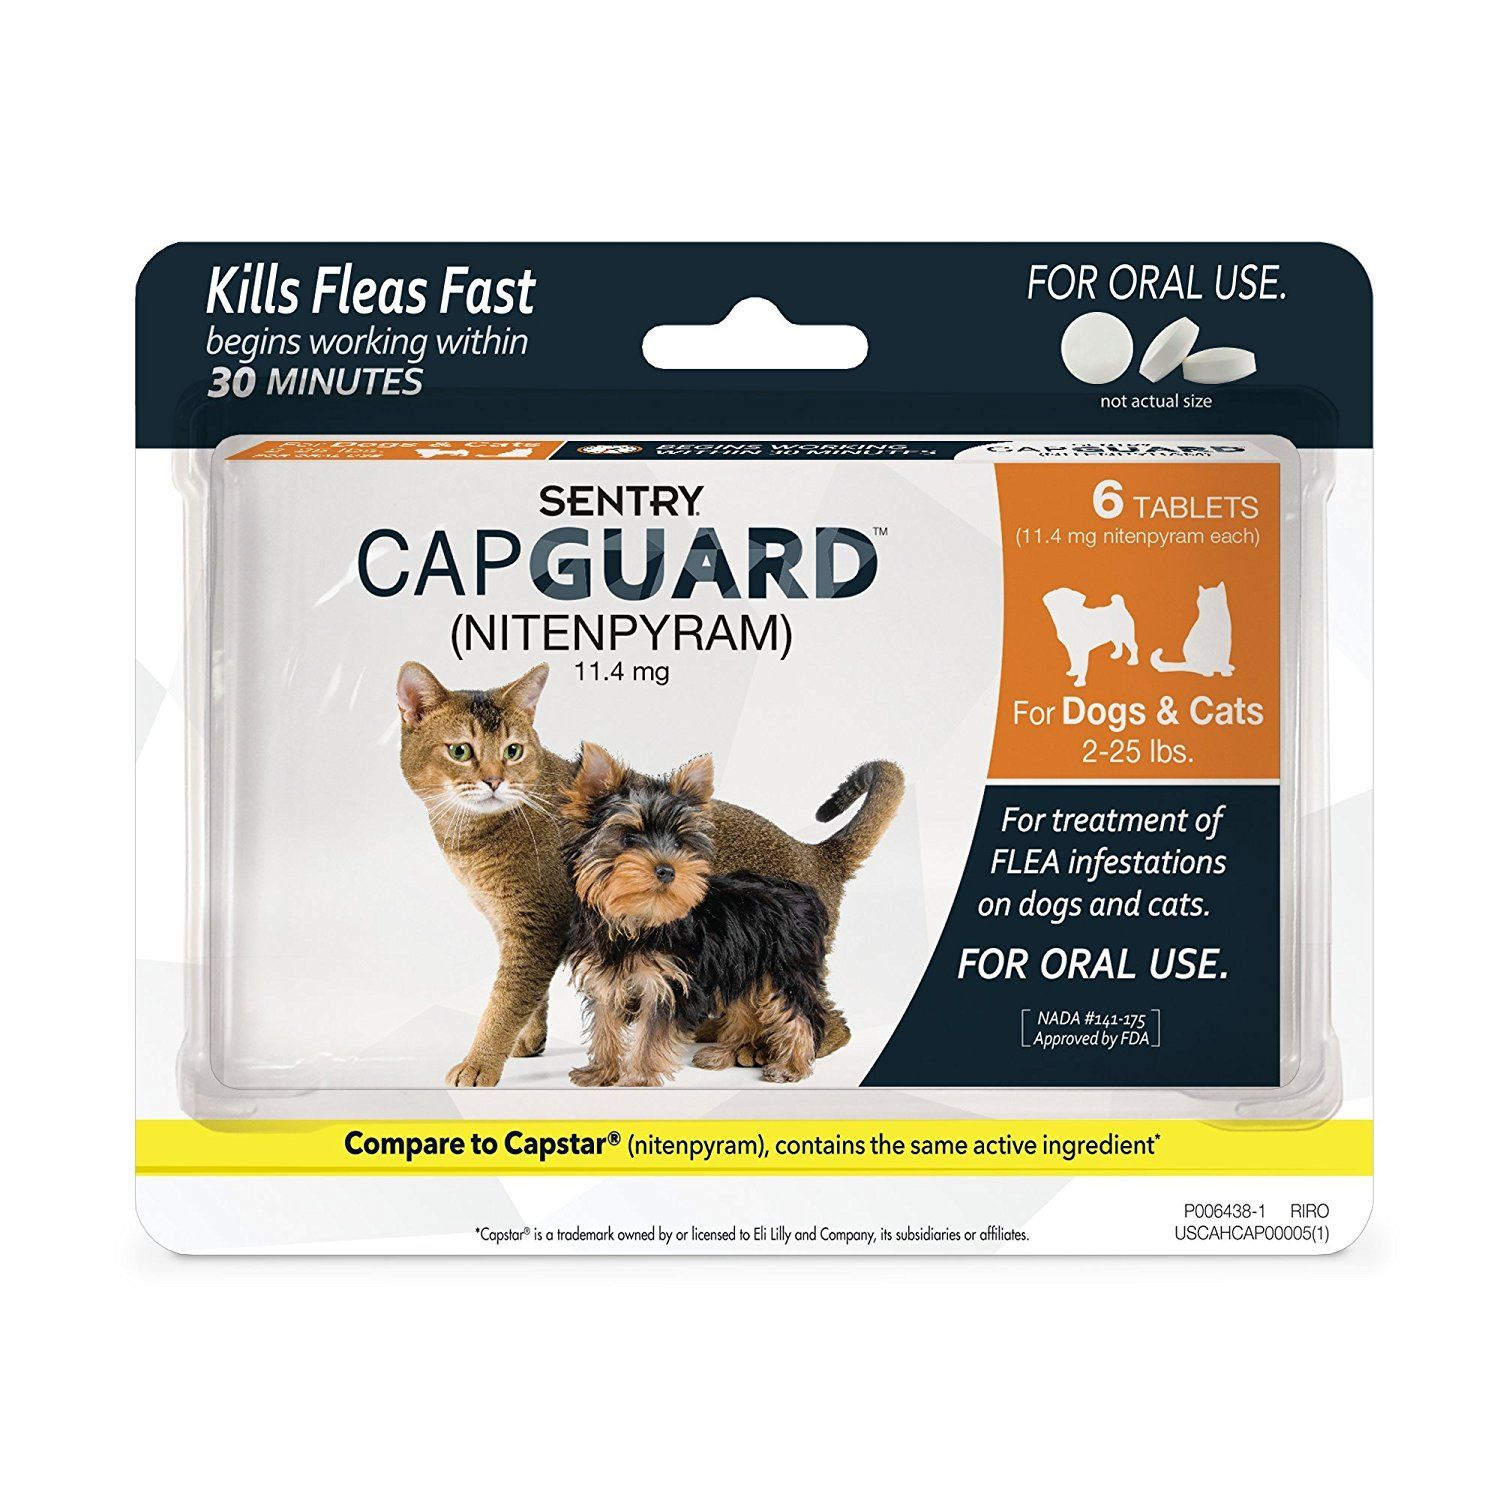 Sentry Capguard Flea Tablets For Cats 2 25lbs 6ct Click Image To Review More Details This Is An Affiliate Link And I Receive A Cat Fleas Fleas Flea Control